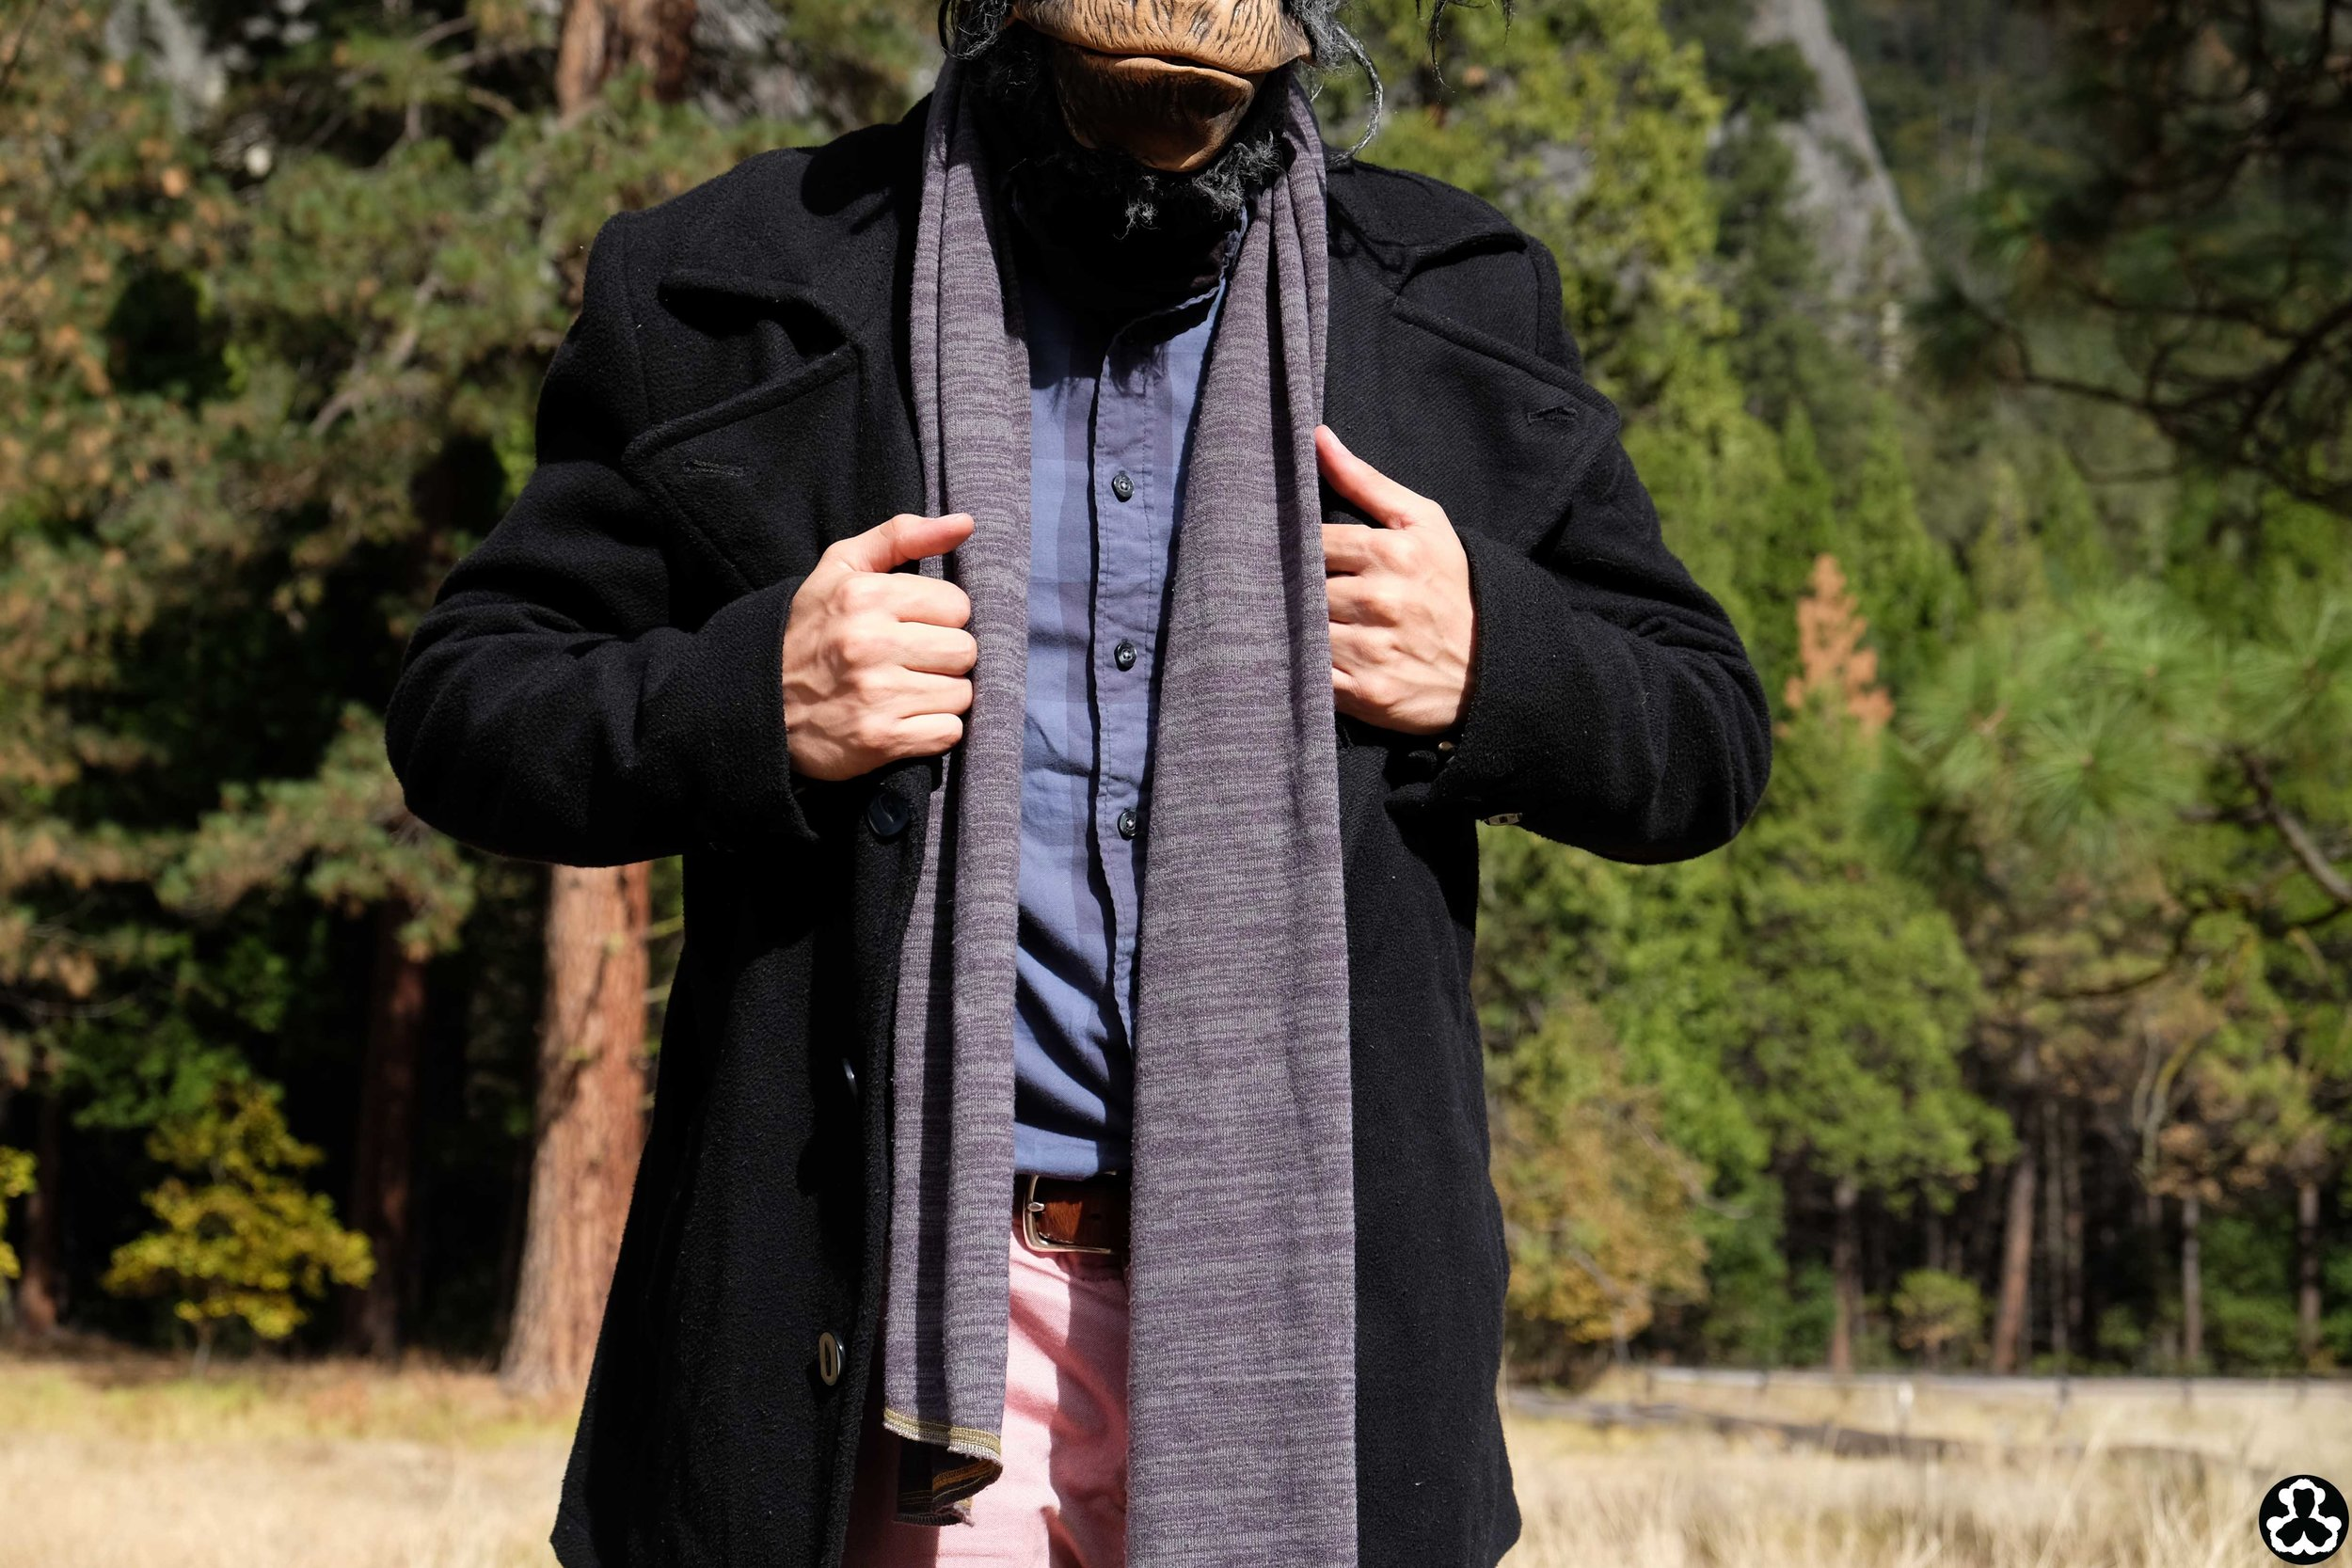 ape-is-dapper-apprentice-yosemite-outfits-10